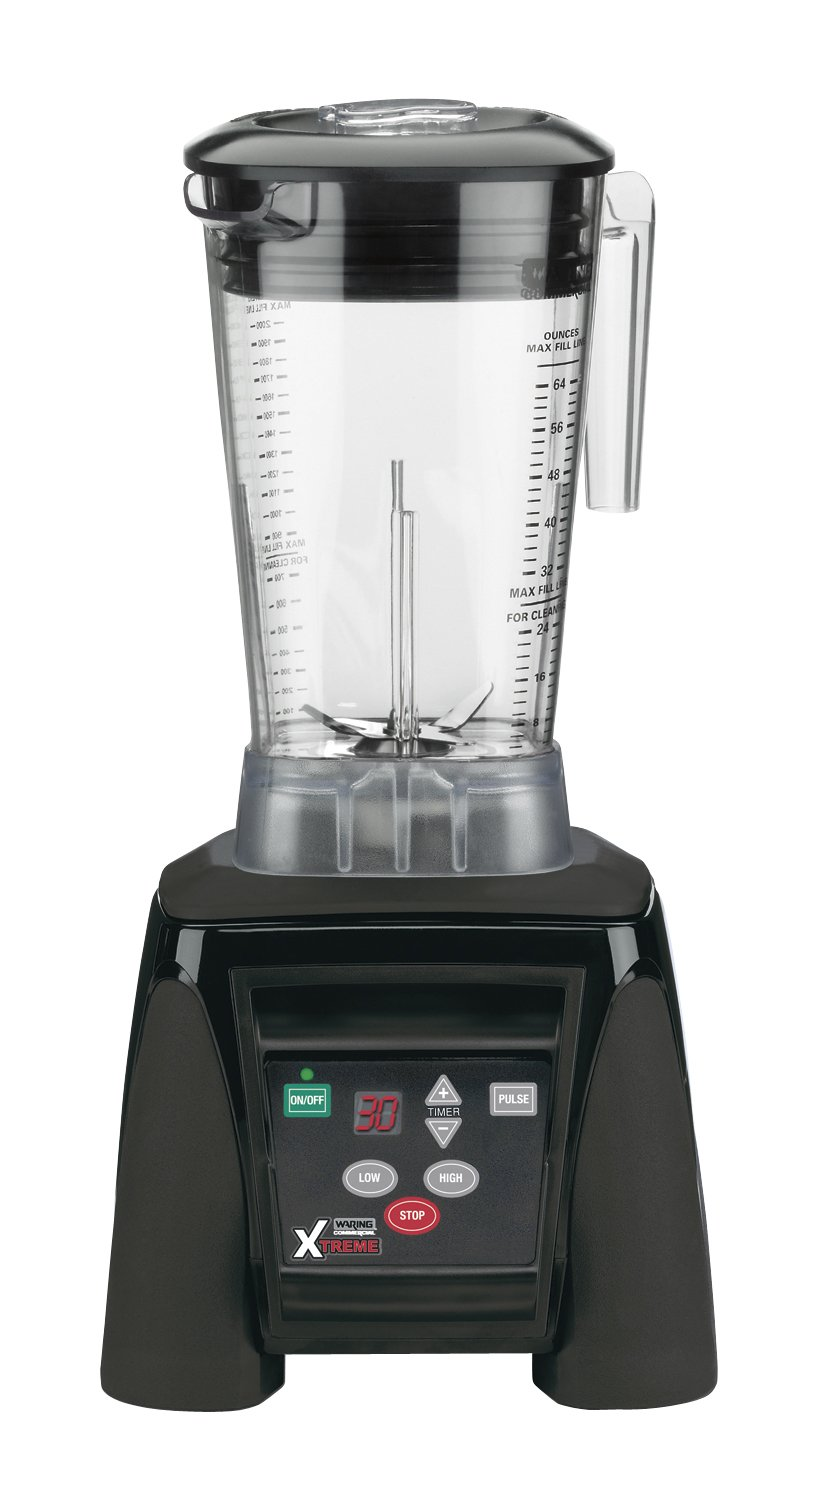 Waring Commercial Rap MX1100XTX Hi-Power Electronic Keypad Blender with Timer and The Raptor Copolyester Container, 64-Ounce, Black